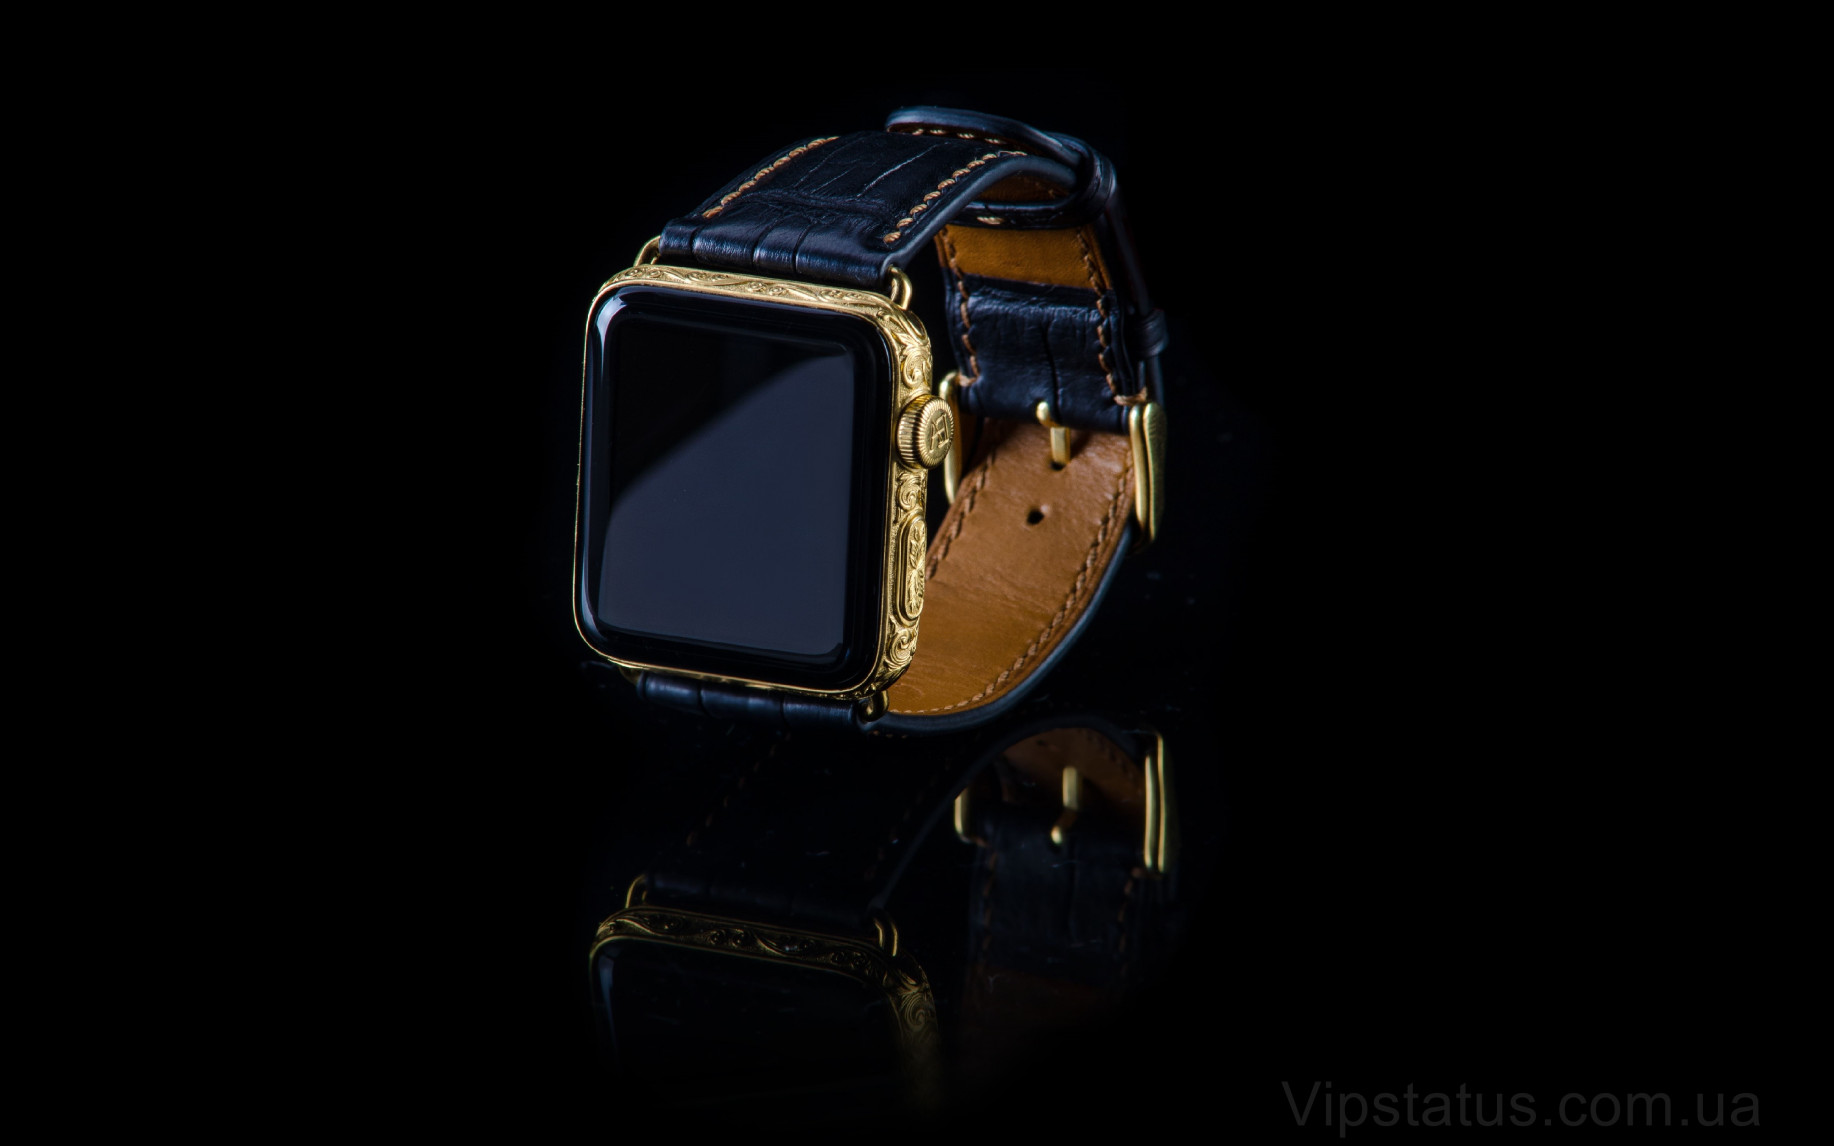 Elite Monarch Gold Apple Watch 5 Monarch Gold Apple Watch 5 image 1